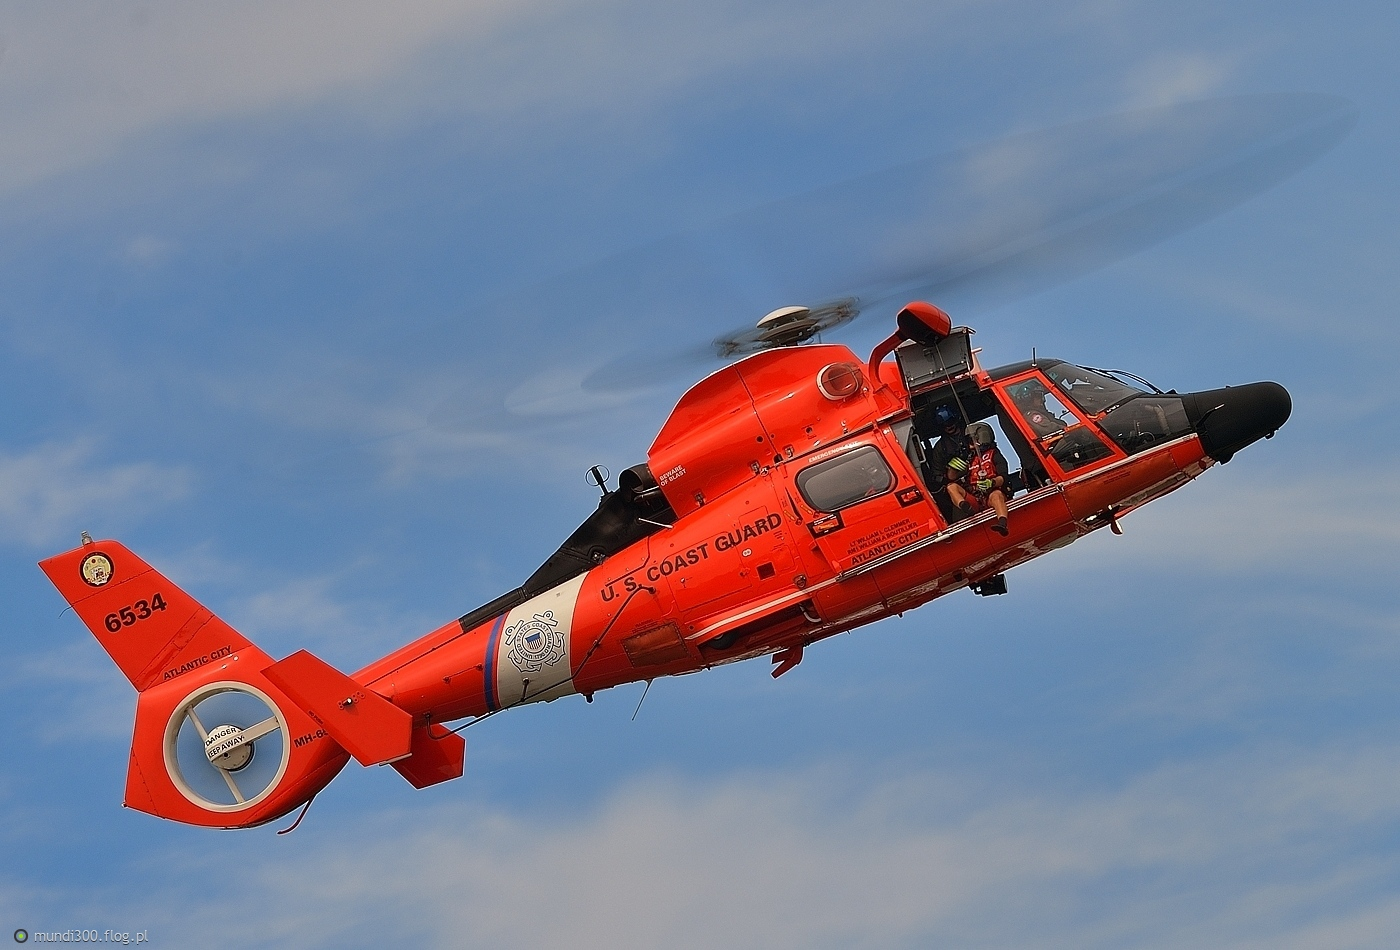 US Coast Guard - Atlantic City